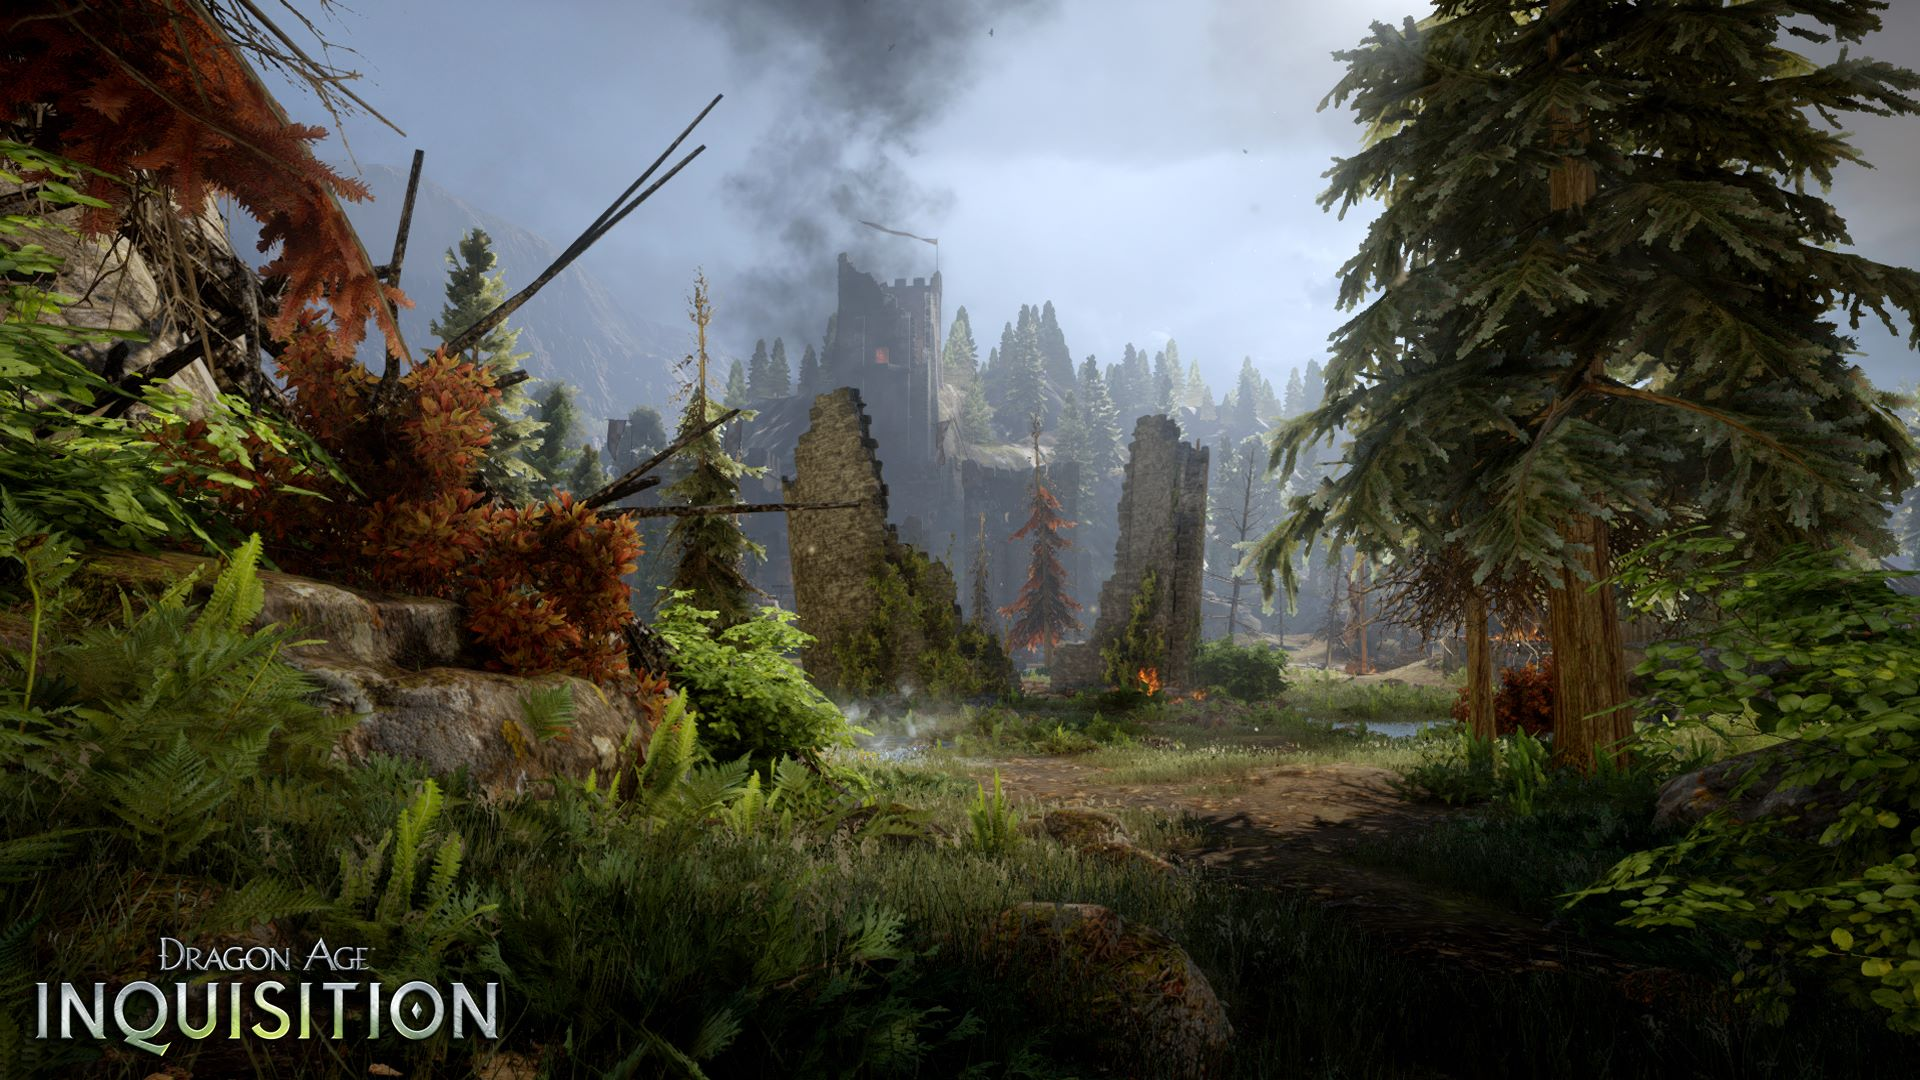 Dragon Age Inquisition Screenshots Show Off The Hinterlands And Redcliffe RPG Site